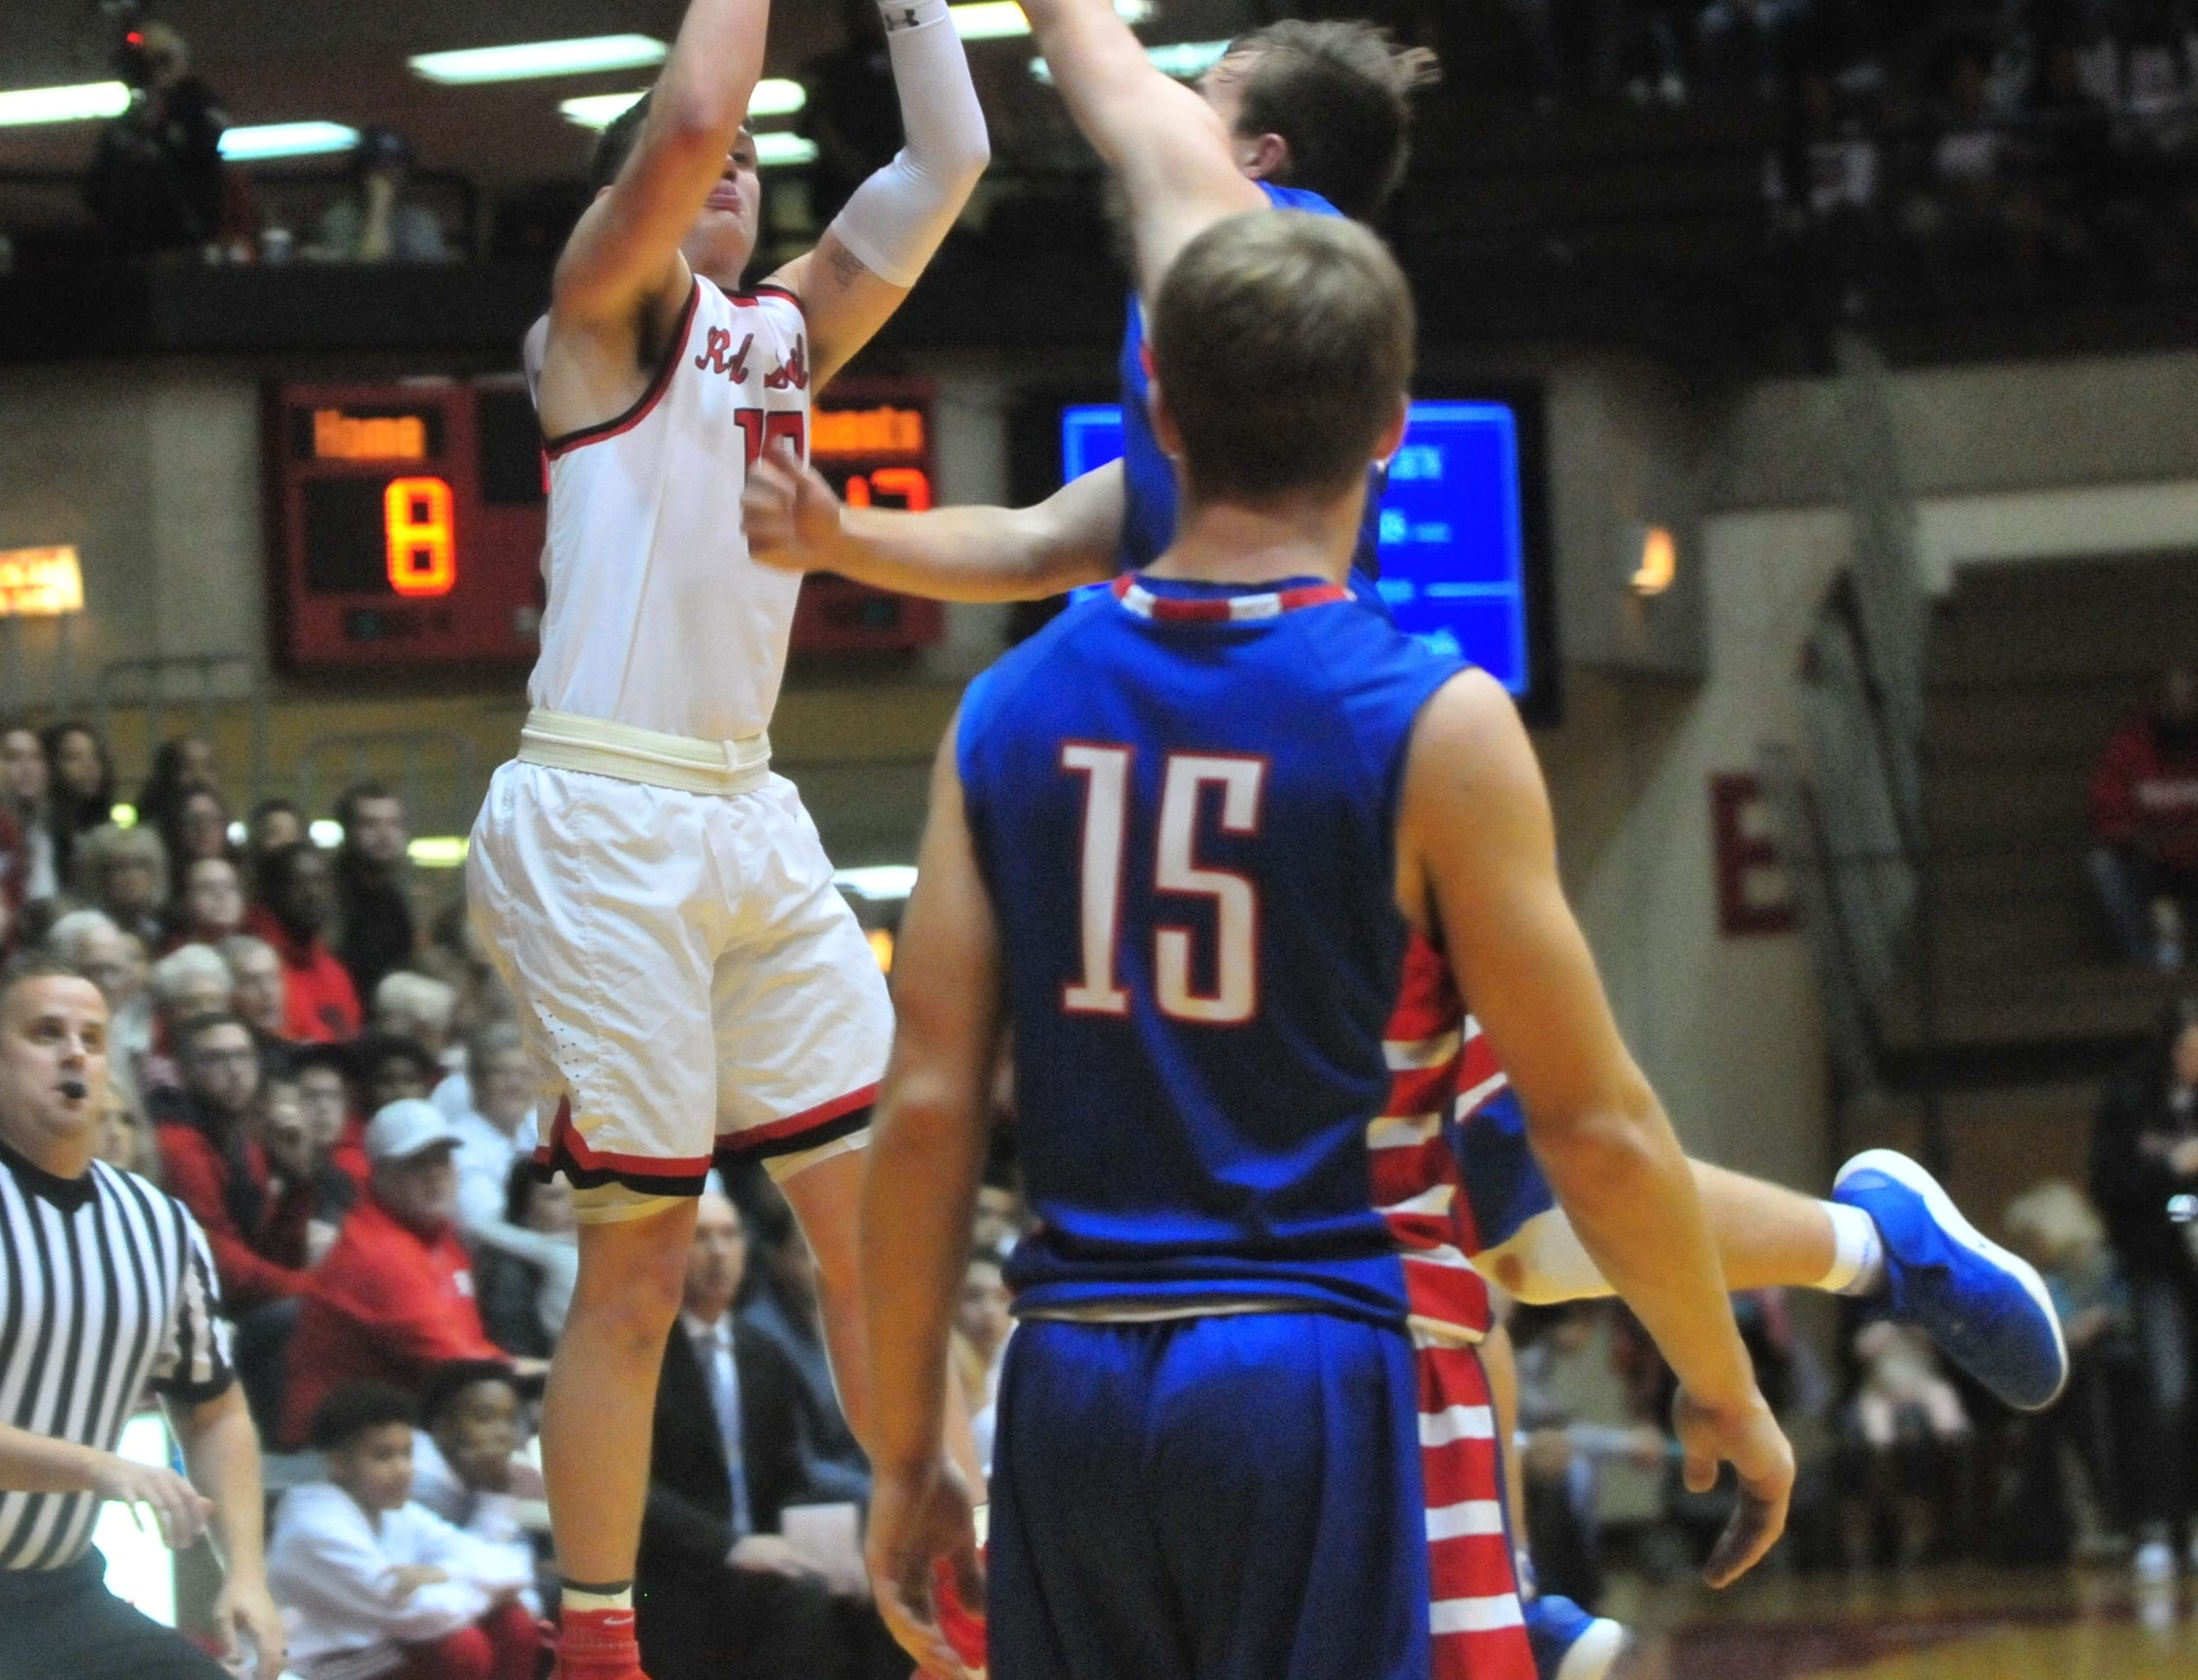 Richmond High School senior Lucas Kroft shoots a 3-pointer at the end of the first quarter during a boys basketball game against Jay County Saturday, Nov. 24, 2018 at Richmond High School's Tiernan Center.